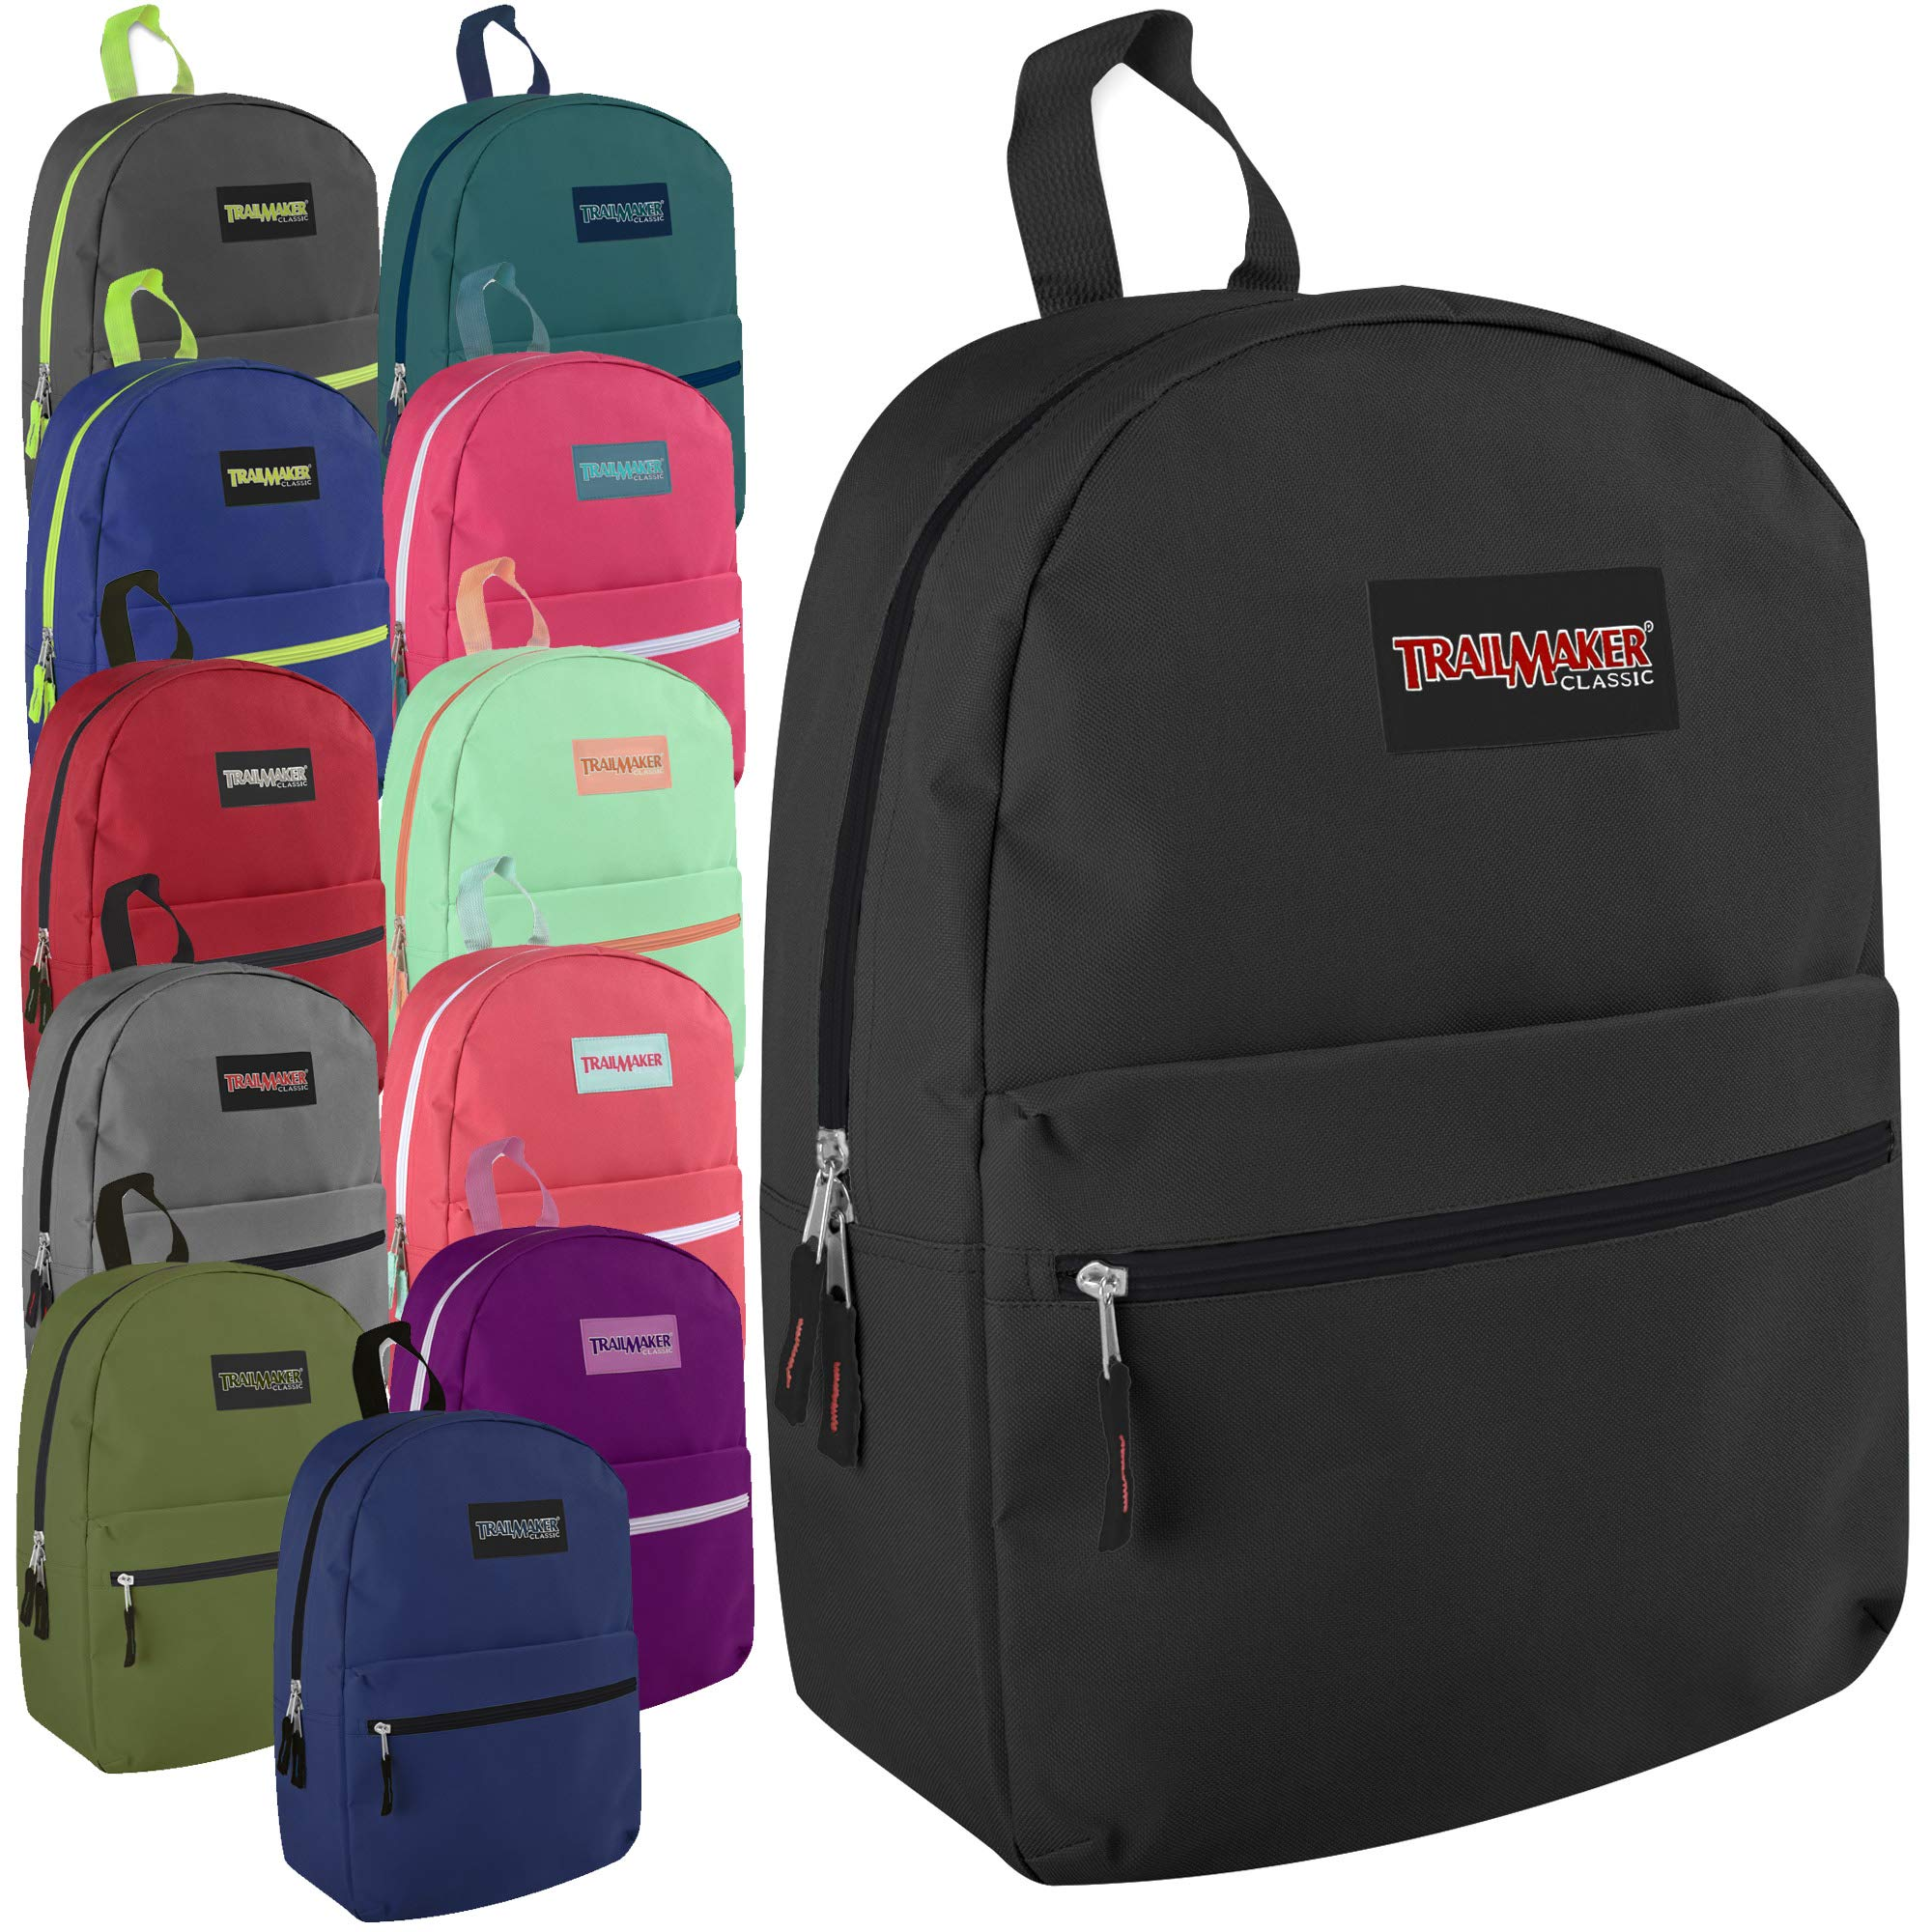 Classic 17 Inch Backpack Case Pack 24 (Assorted 12 Color Pack) by Trail maker